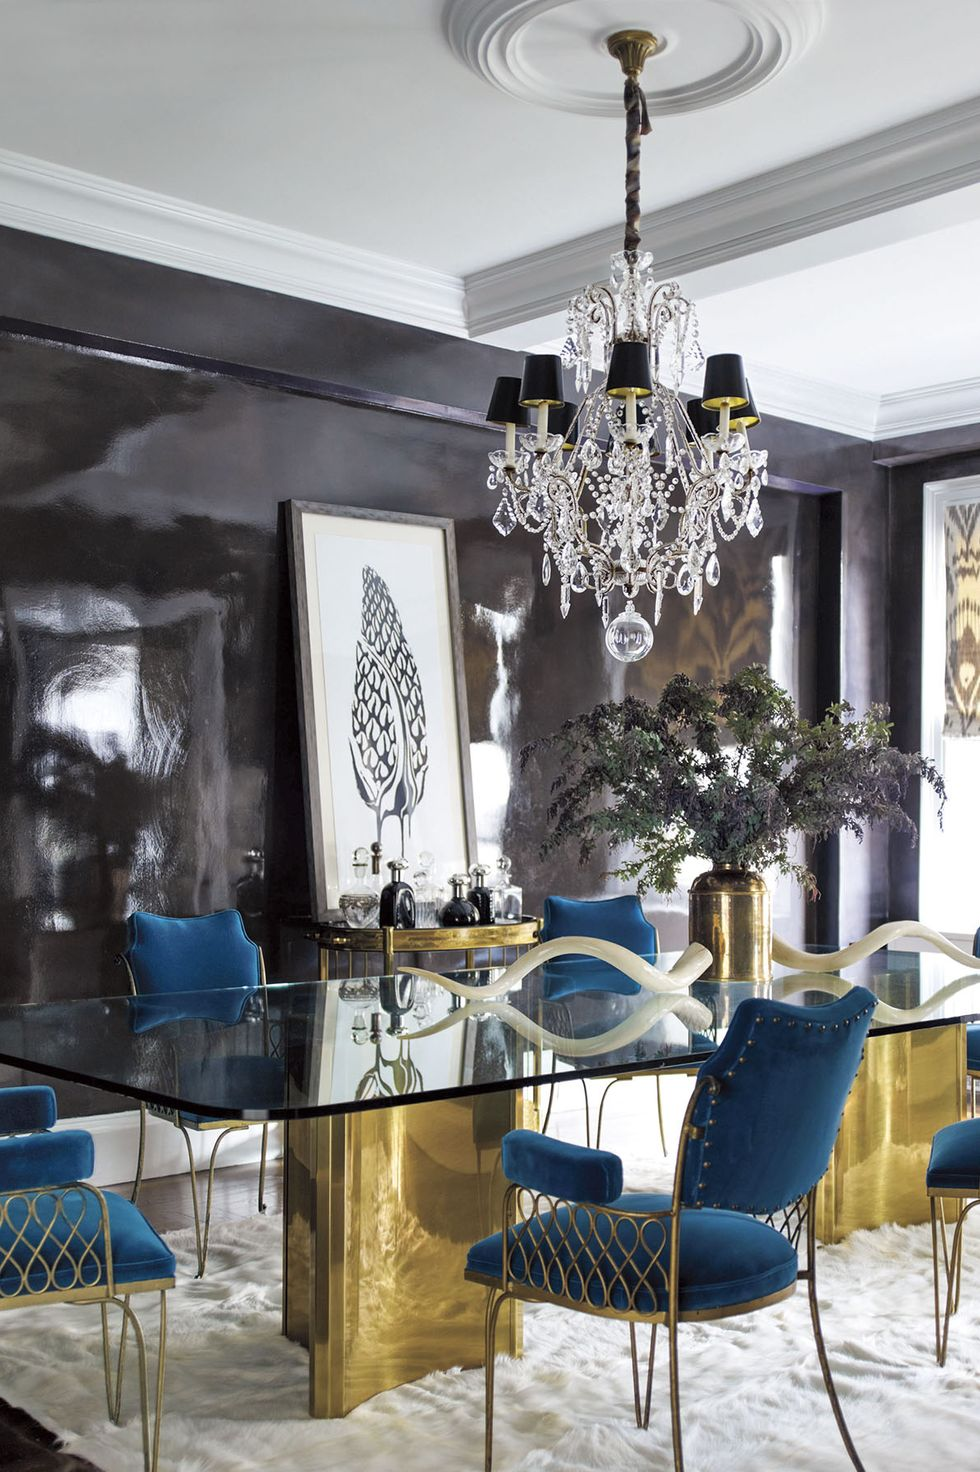 Mdining-room-light-fixture-ideas-7-1502211610